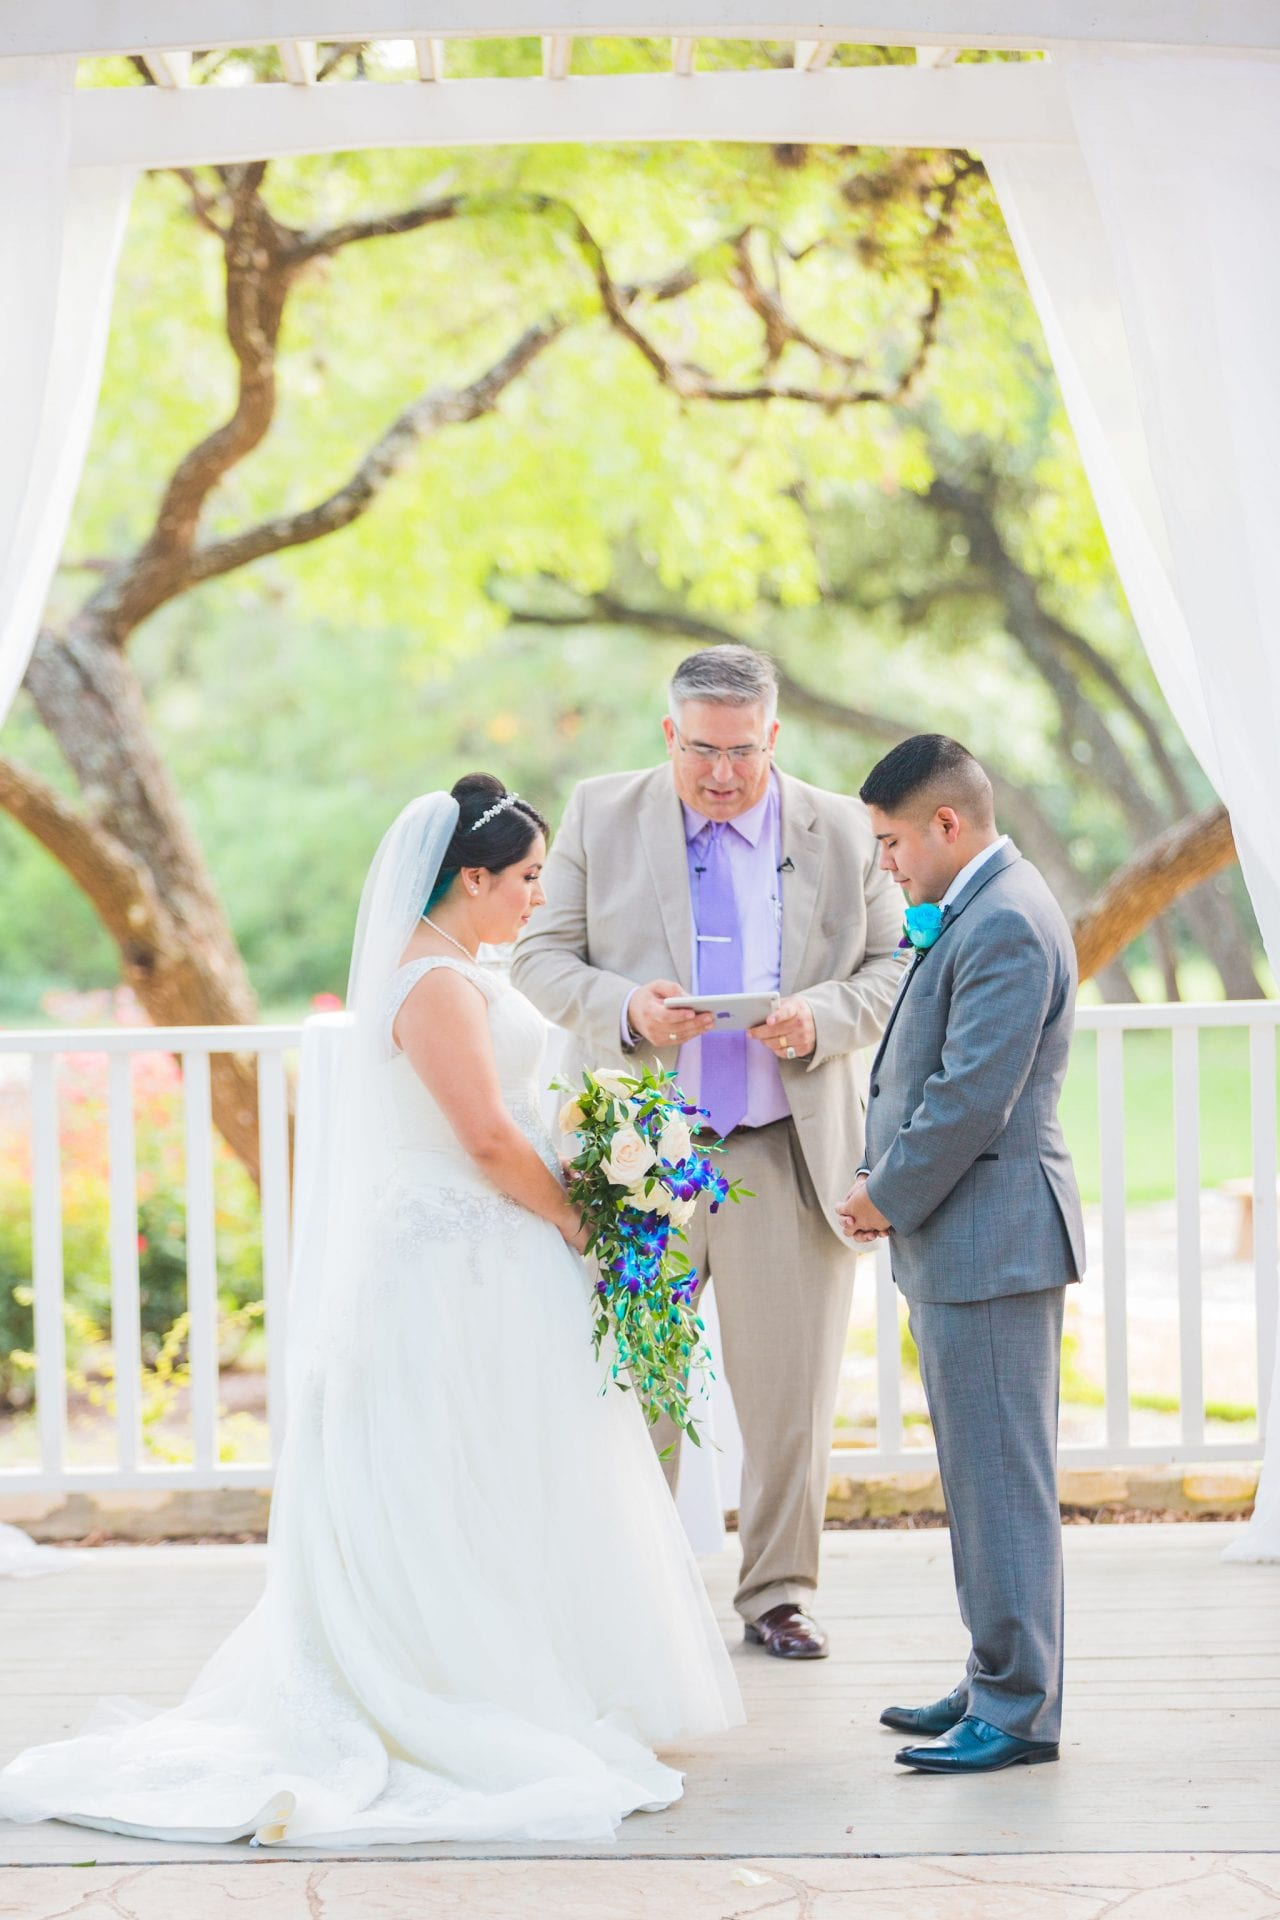 Alex and Adrien Wedding at The Gardens at Old Town ceremony prayer